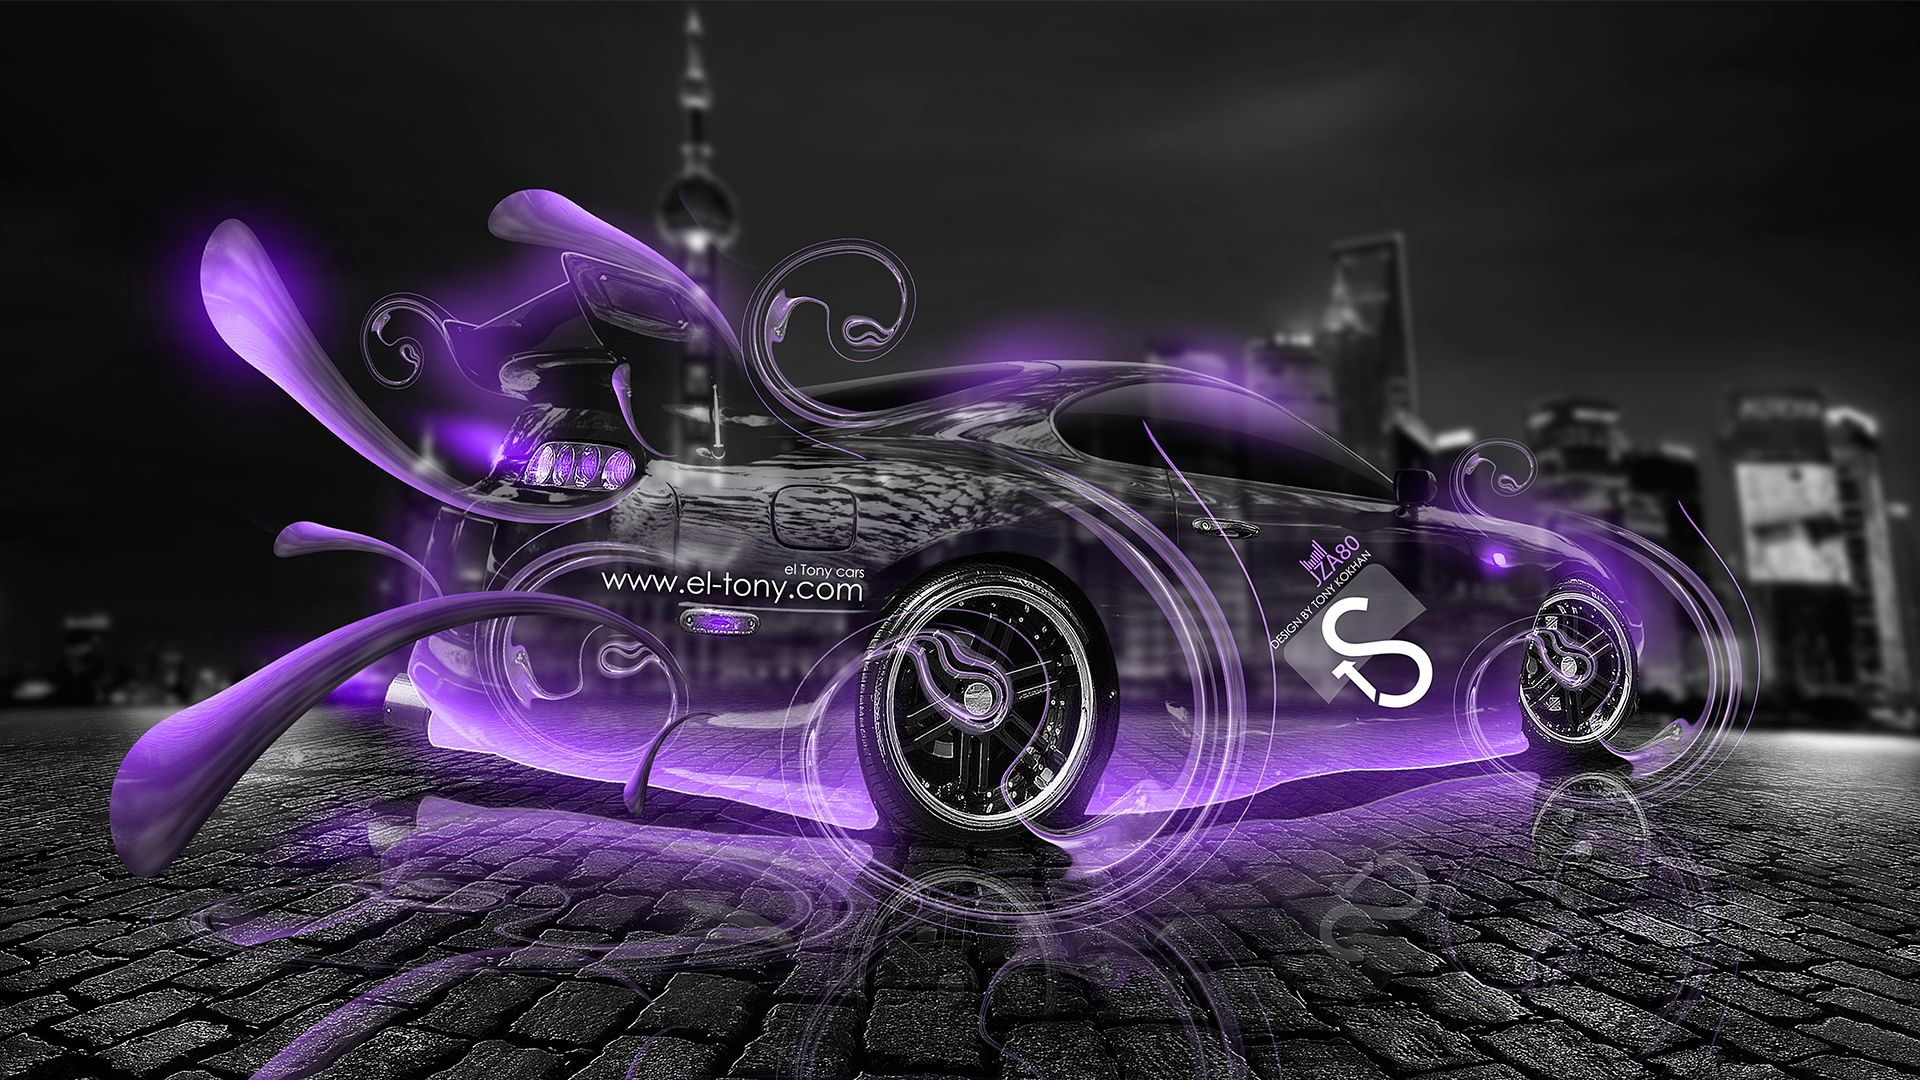 Toyota Supra Jdm Effects Crystal Car 2017 Violet Neon Hd Wallpapers